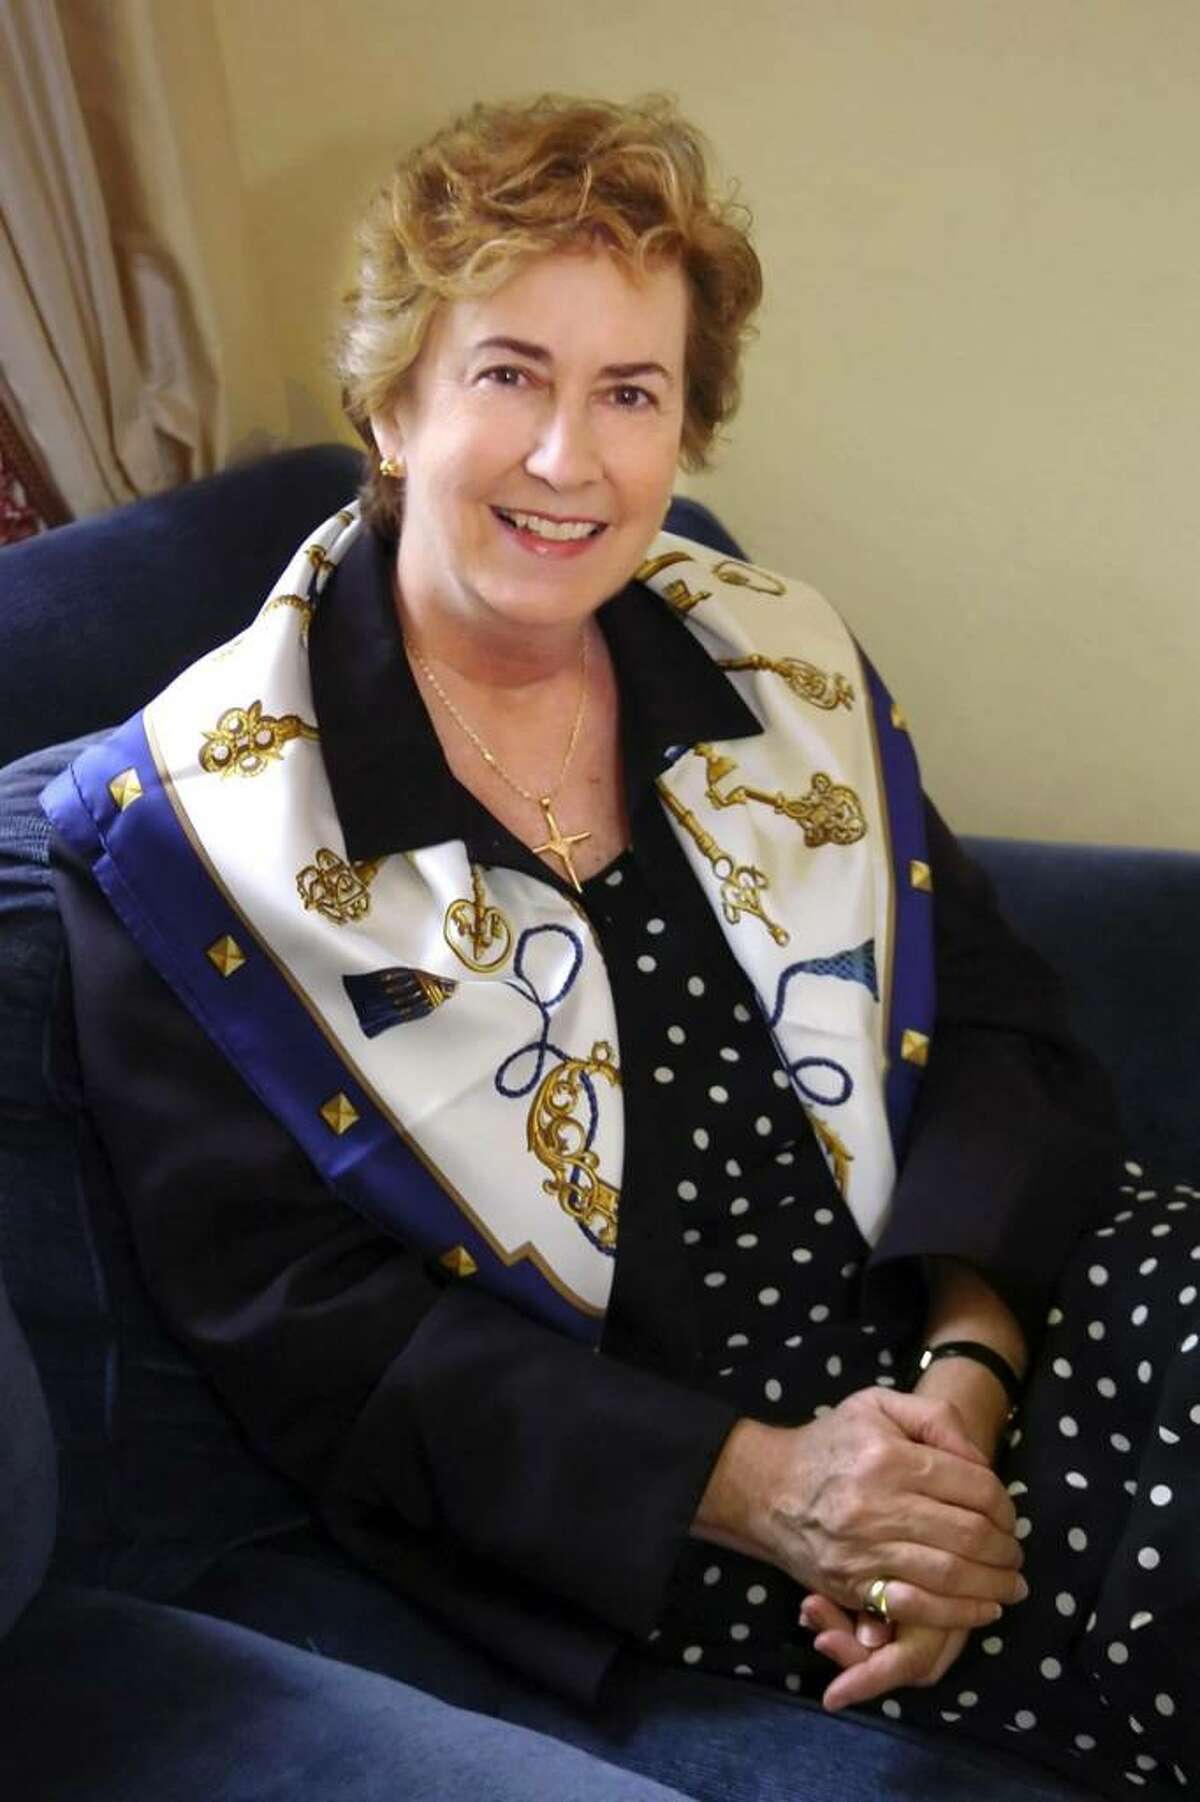 In July, Sister Joan Magnetti will become the executive director of Diocese's